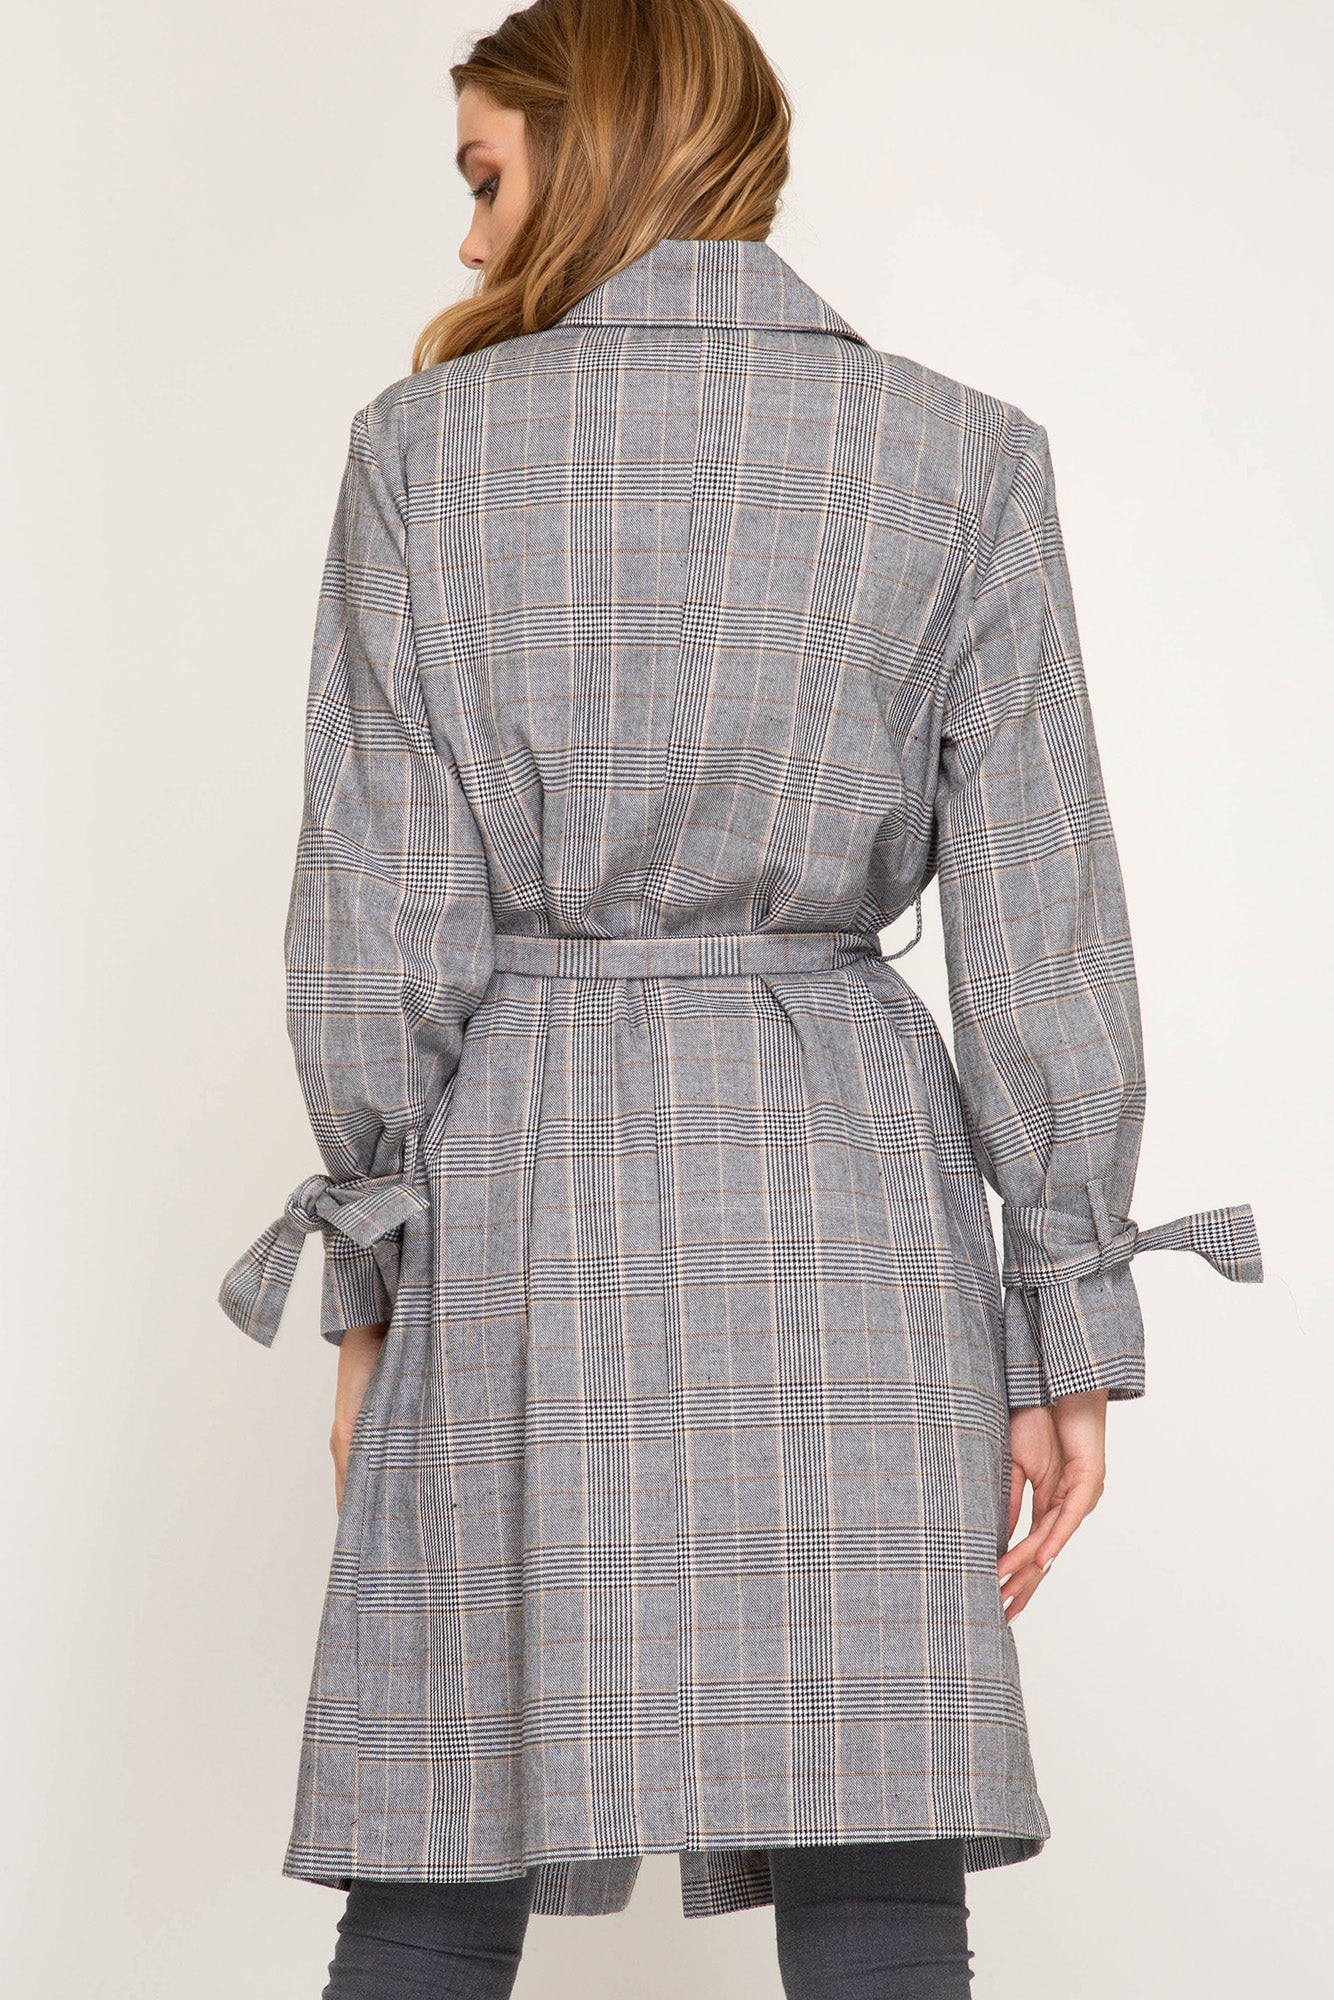 Classic Black & Cream Glen Plaid Jacket with Tie Waist and Pockets